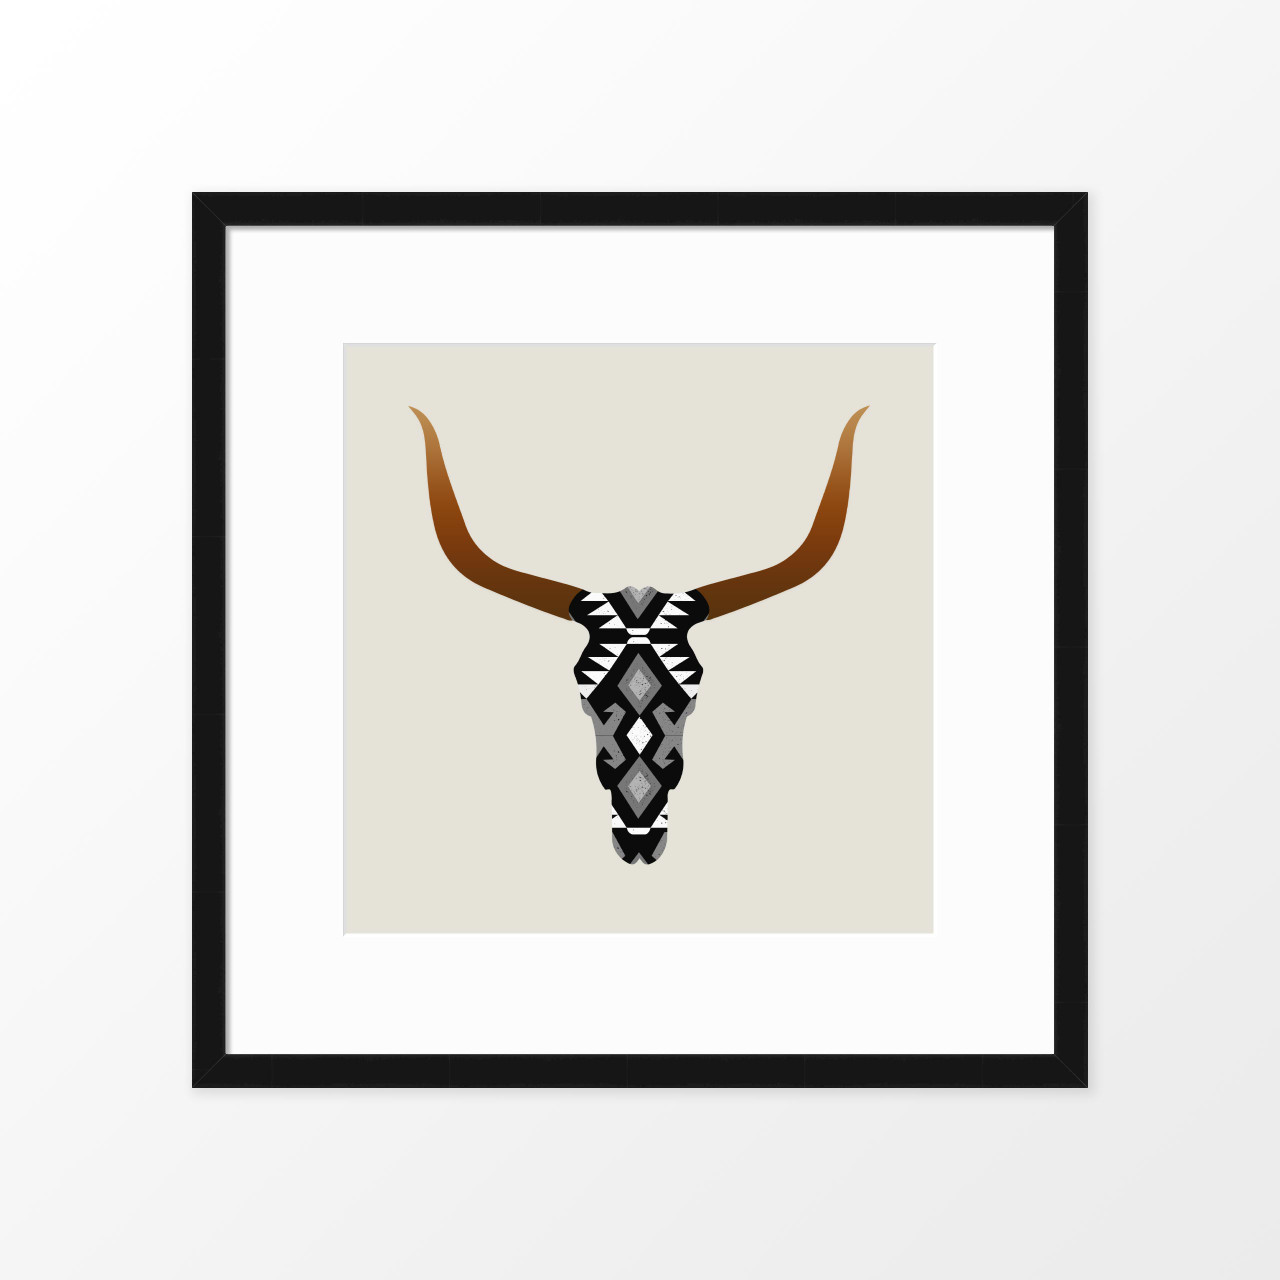 'Longhorn Skull' Art Poster in Black from The Printed Home